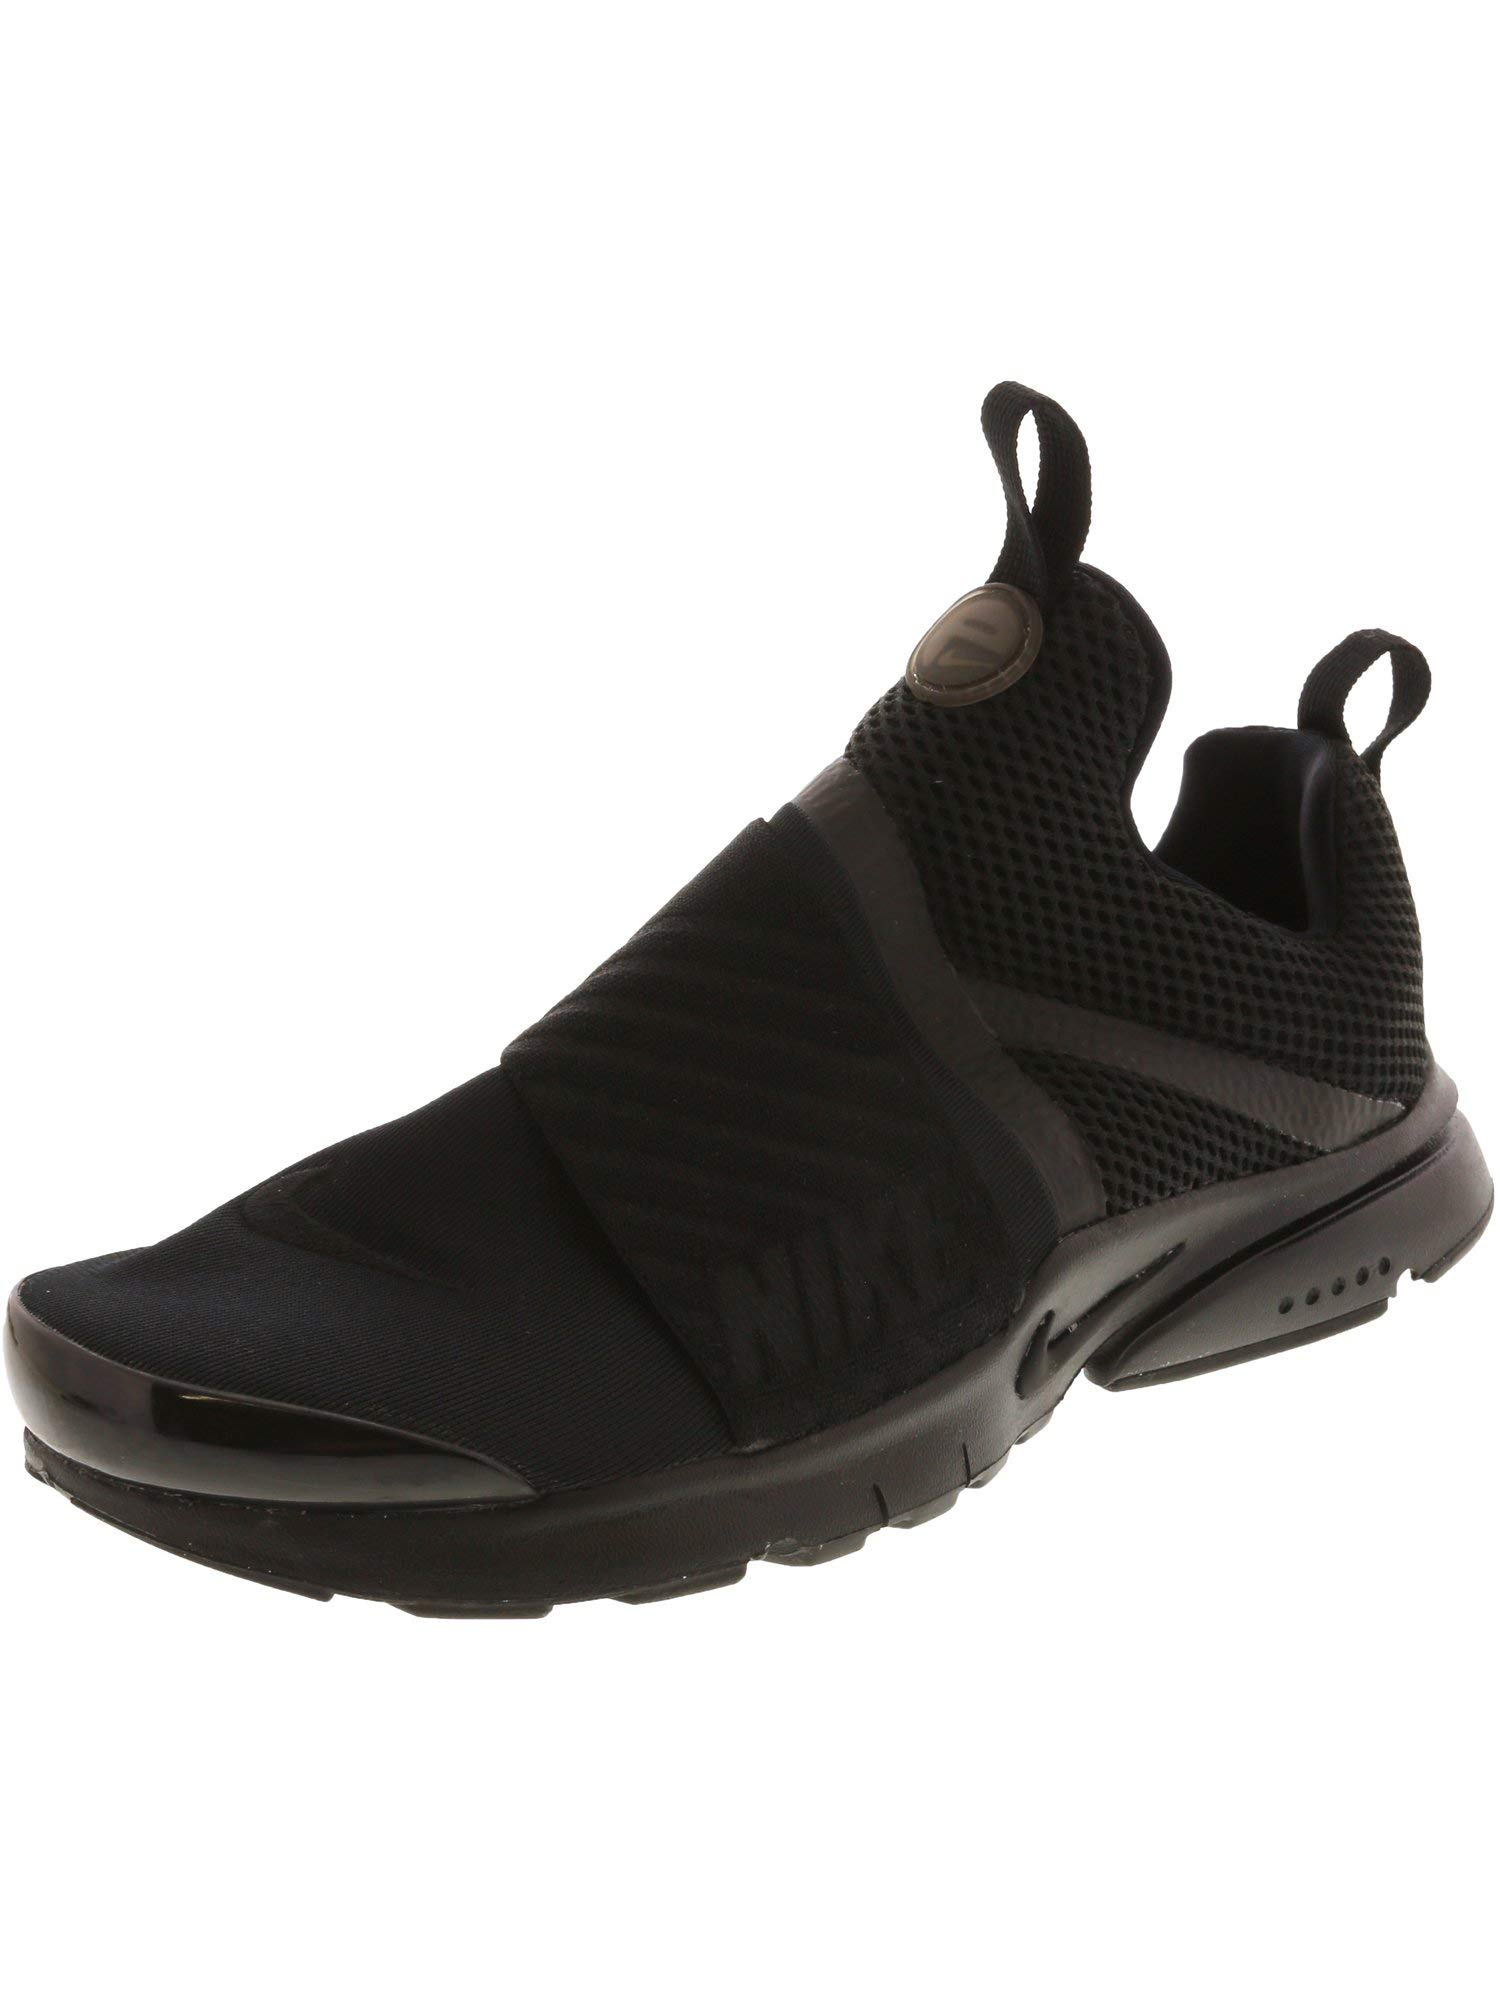 6a4ee5c8128 Galleon - Nike Presto Extreme Big Kid s Shoes Gym Black Black 870020-001 (5  M US)